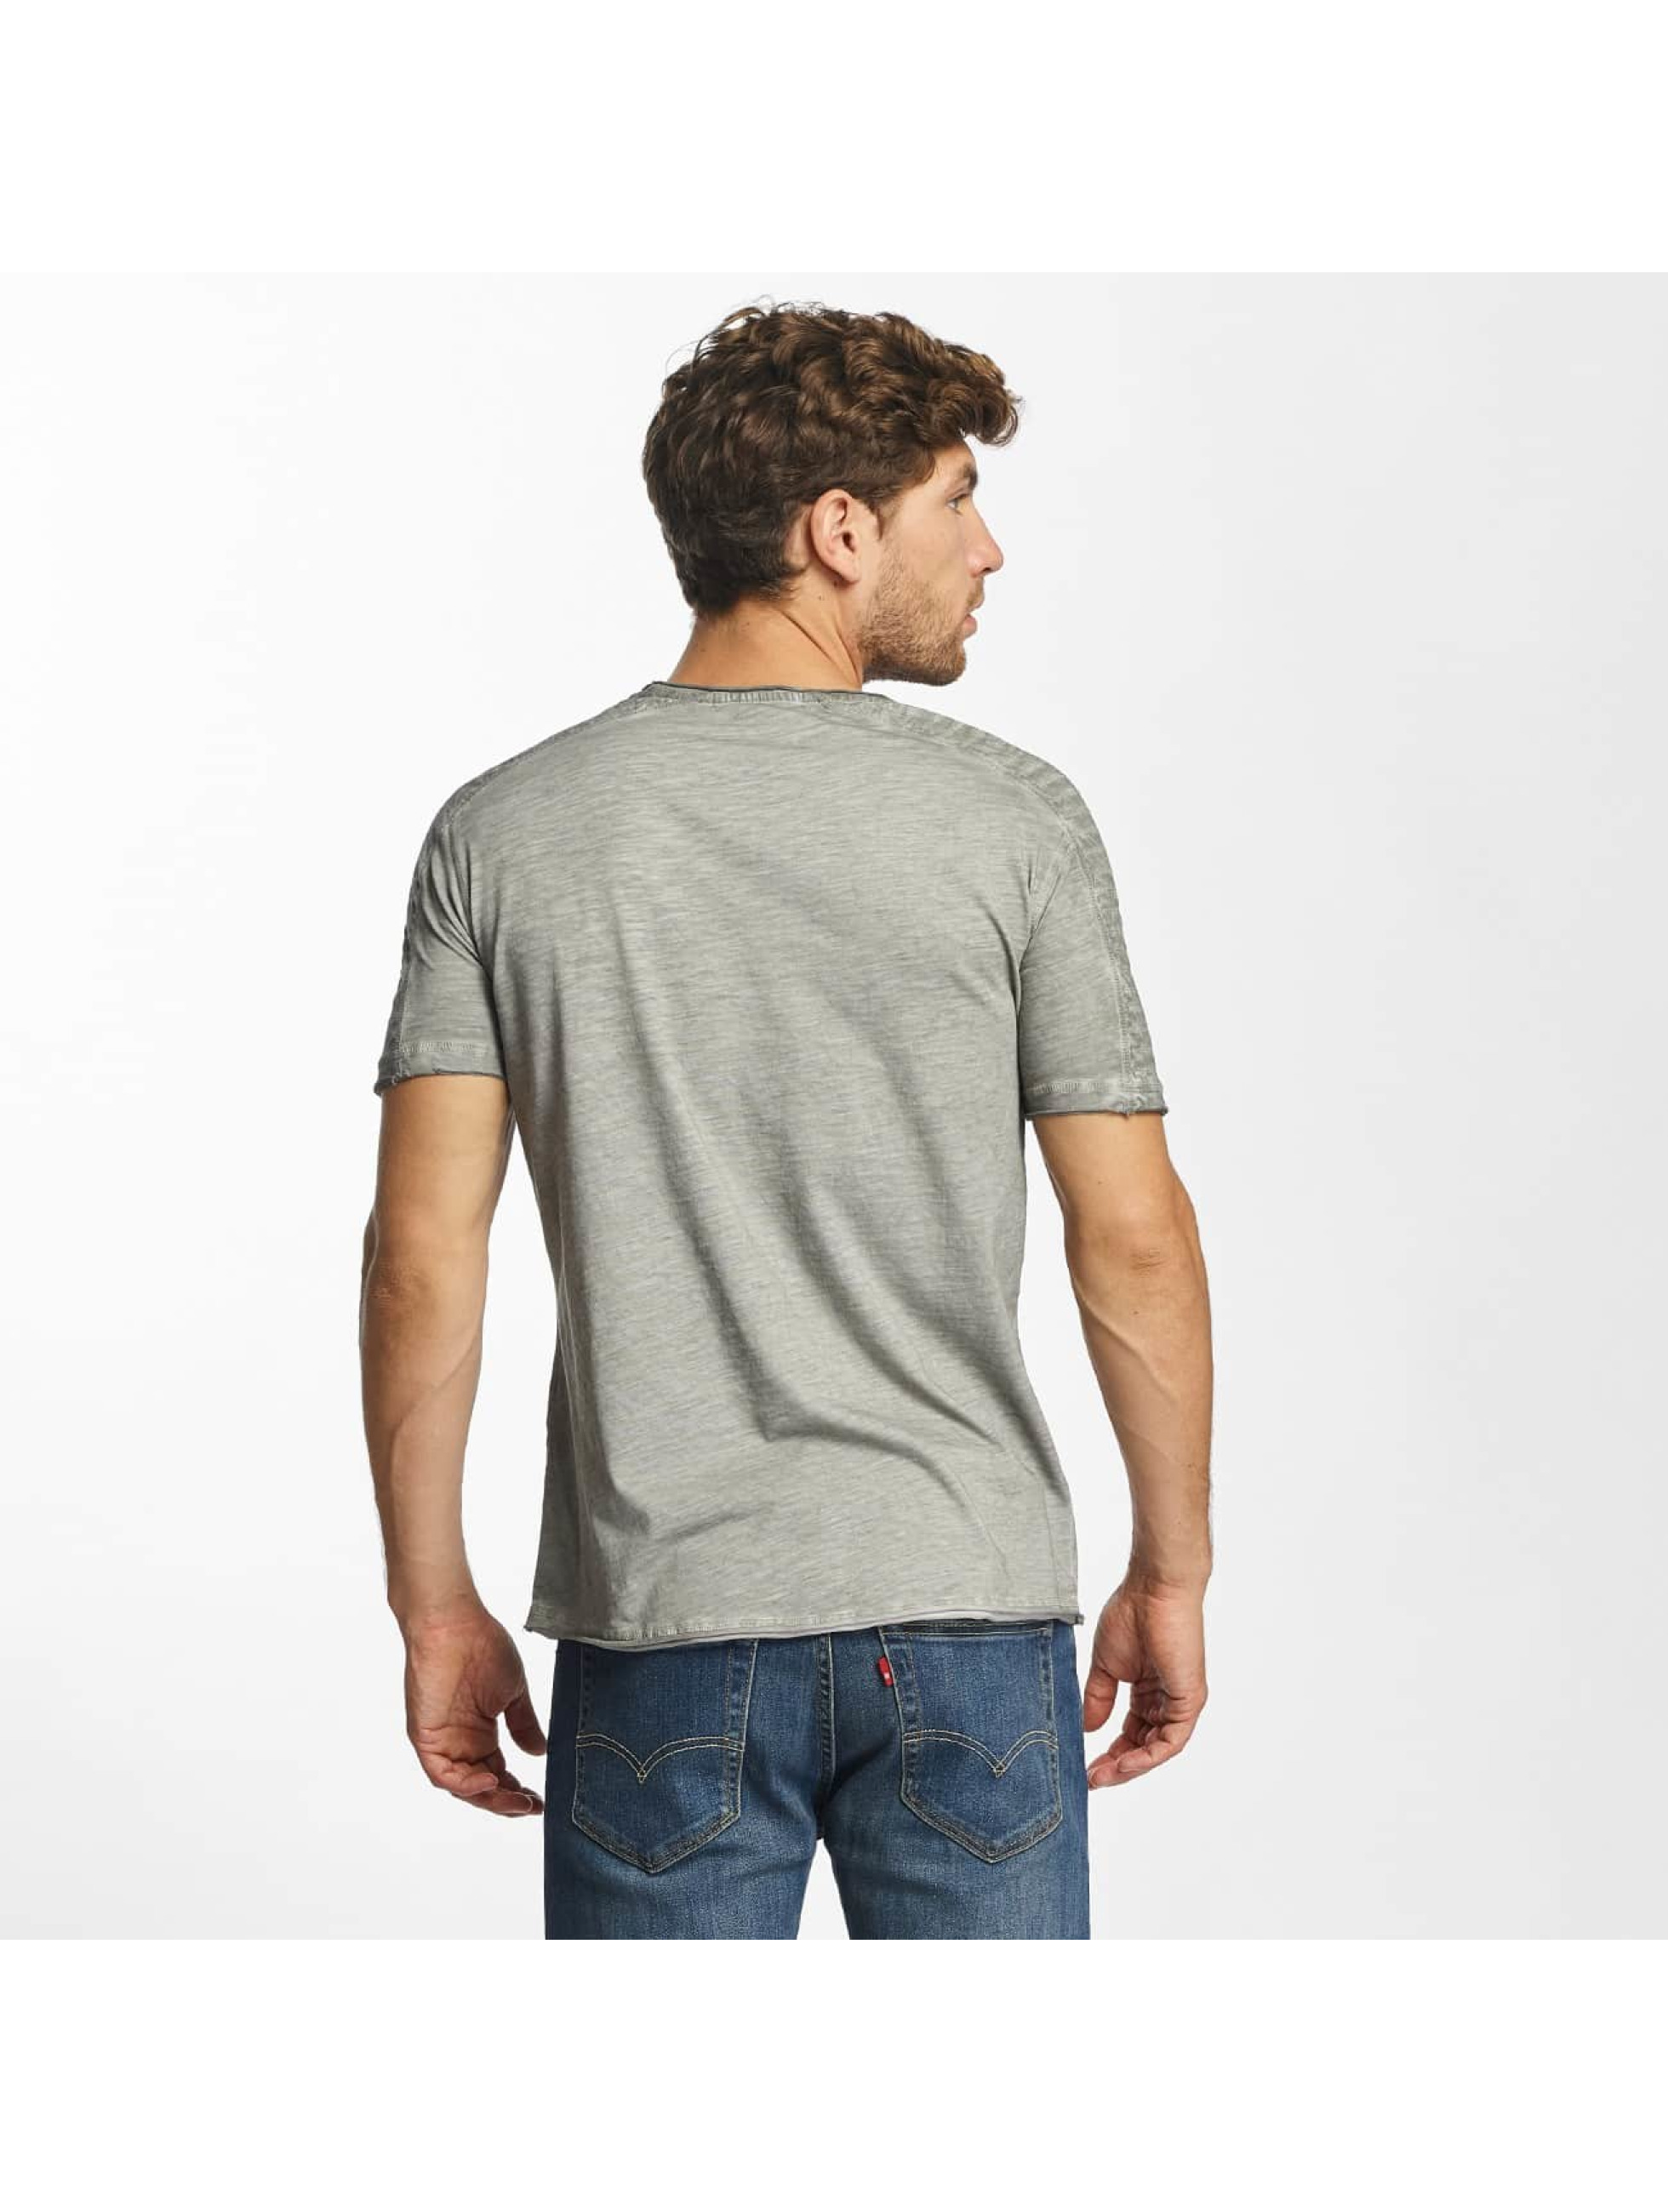 Red Bridge Camiseta Vintage Seam gris